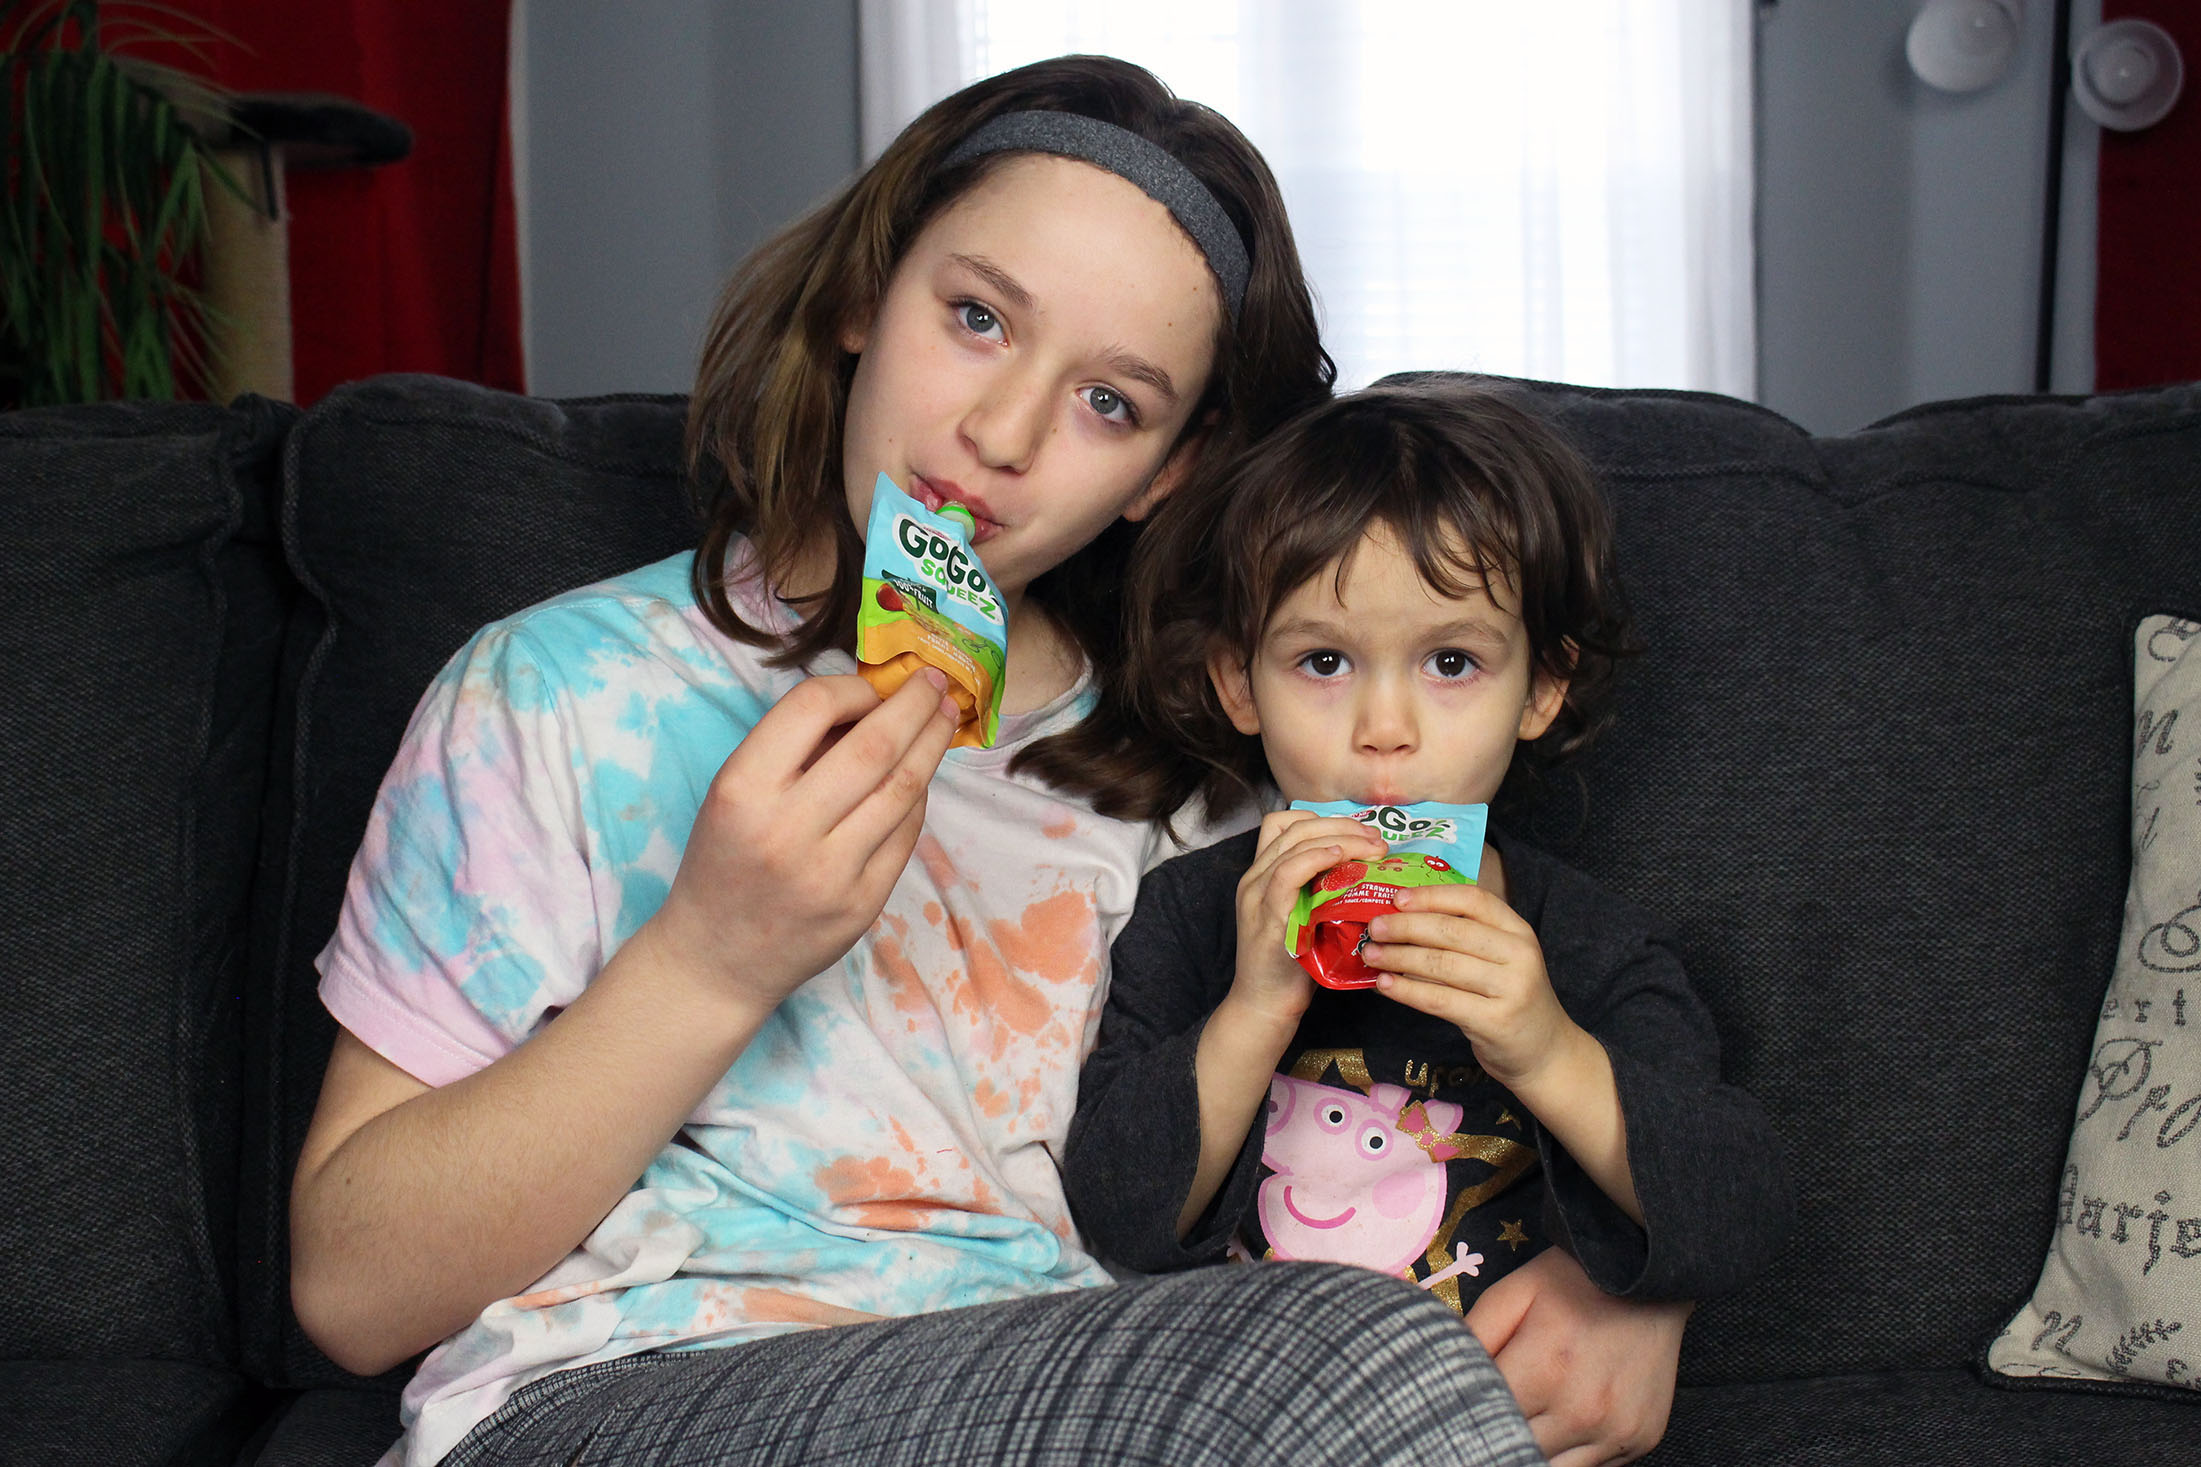 Quick and Easy Snacks: After School Snacking Made Easy With GoGo squeeZ